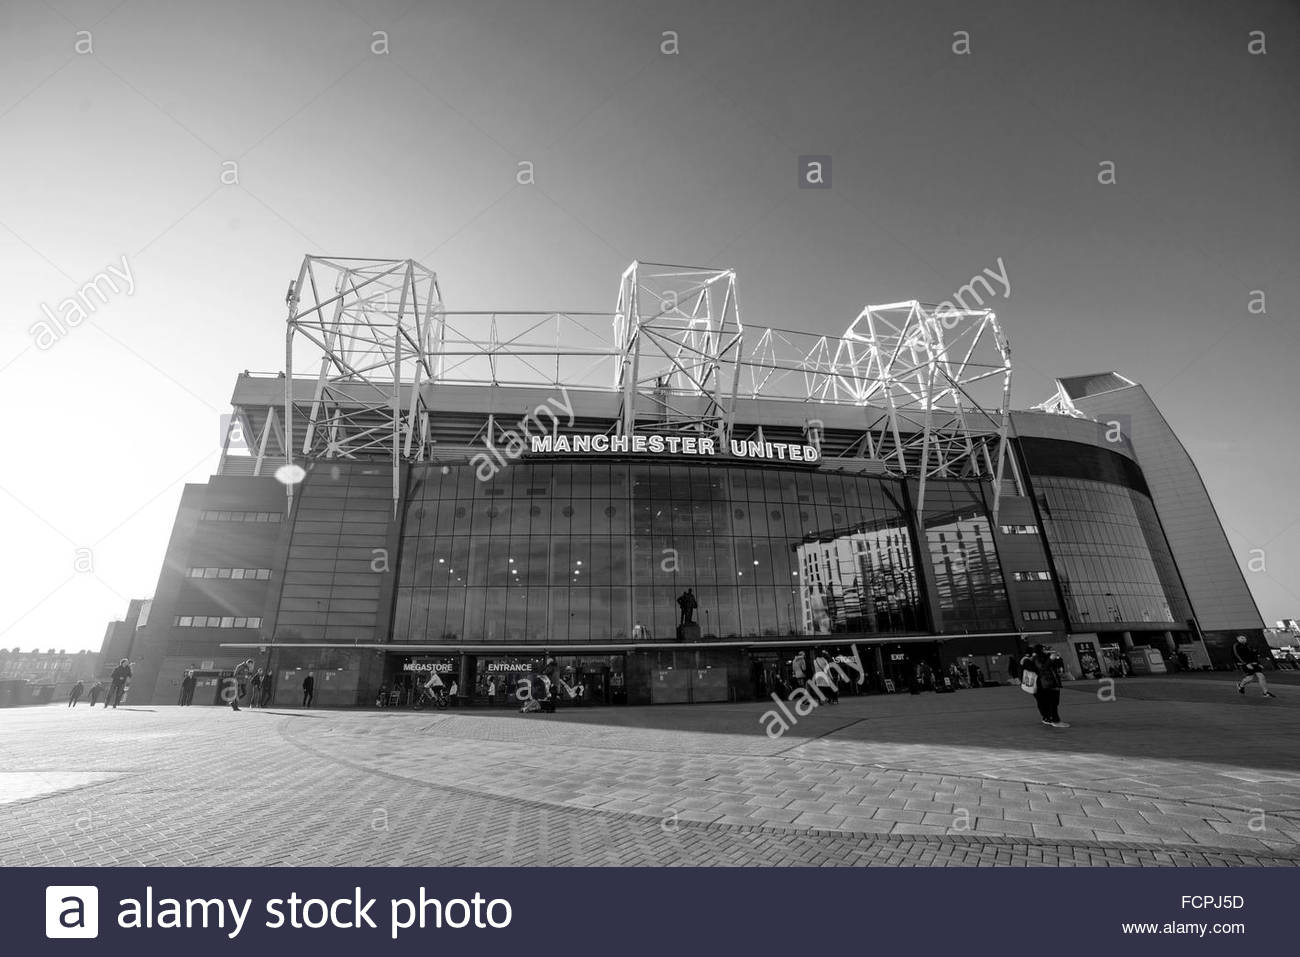 Old Trafford, Manchester United - Stock Image